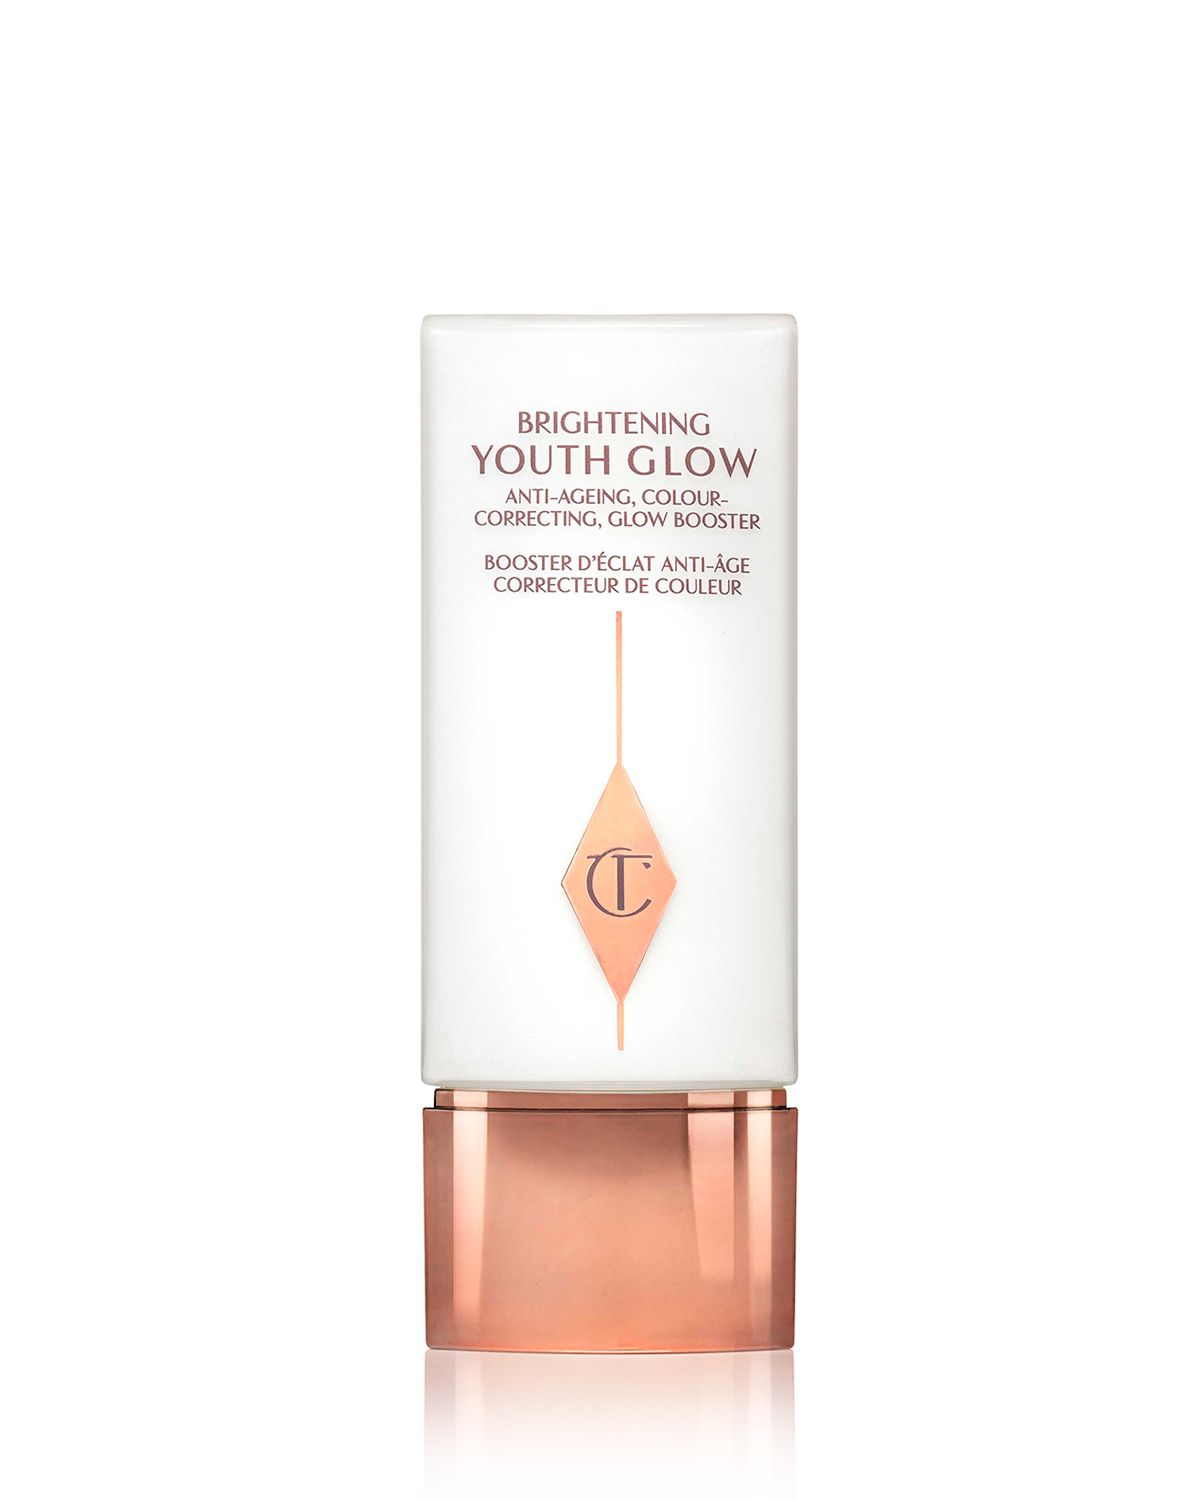 Brightening Youth Glow by Charlotte Tilbury